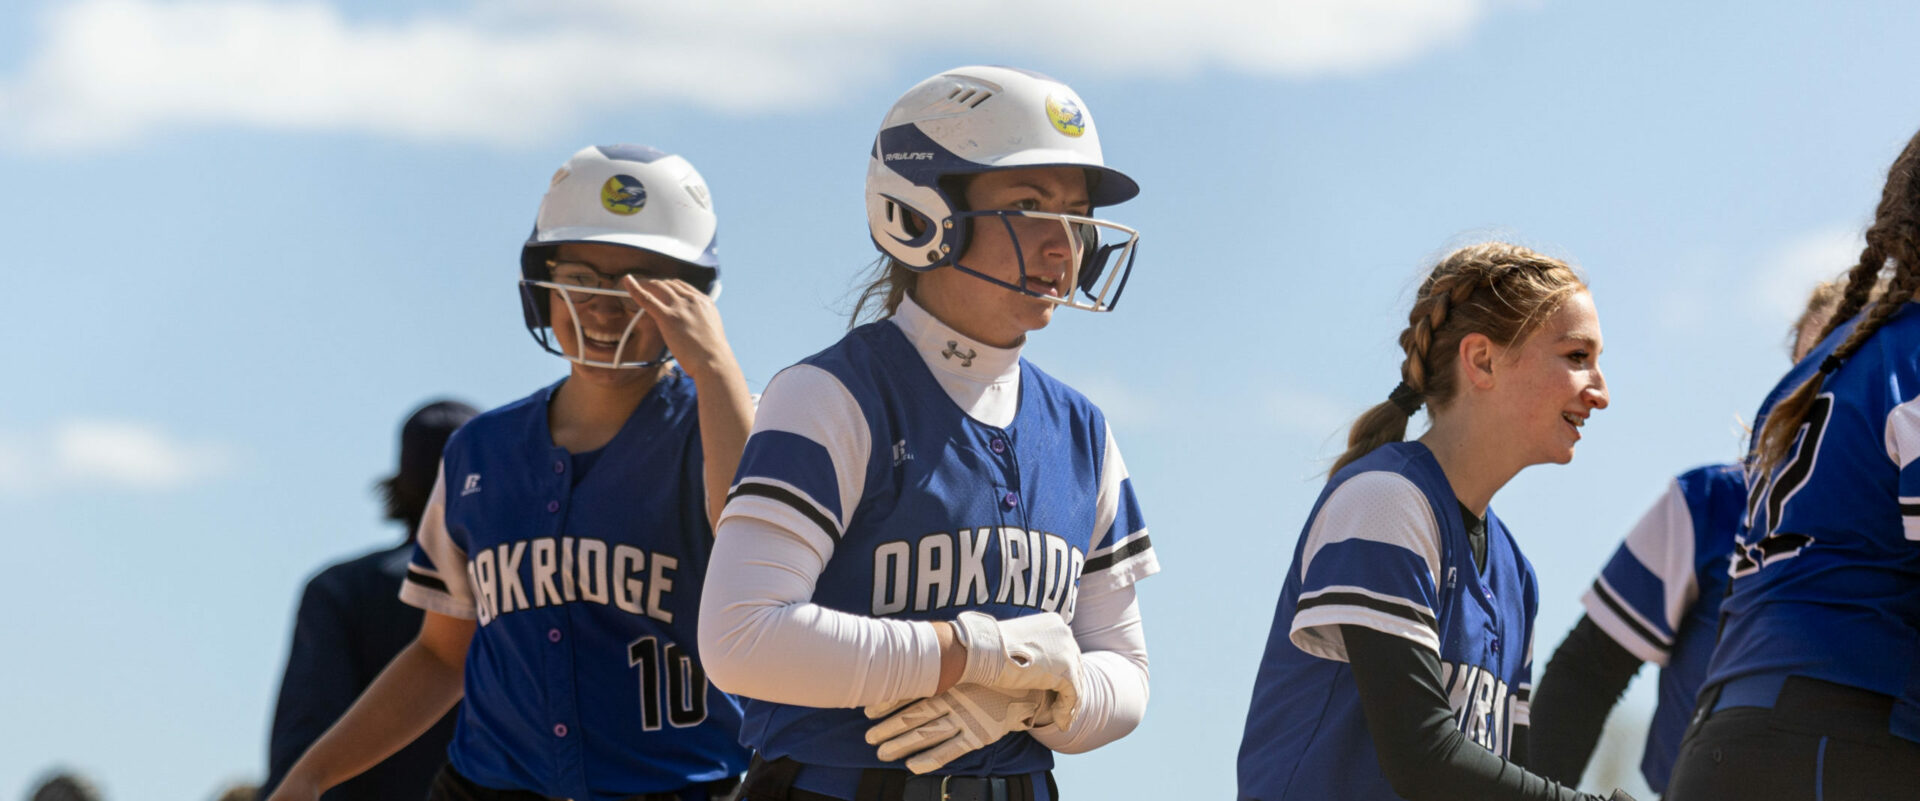 Oakridge softball team improves to 21-0 with a dominant doubleheader sweep of conference rival North Muskegon